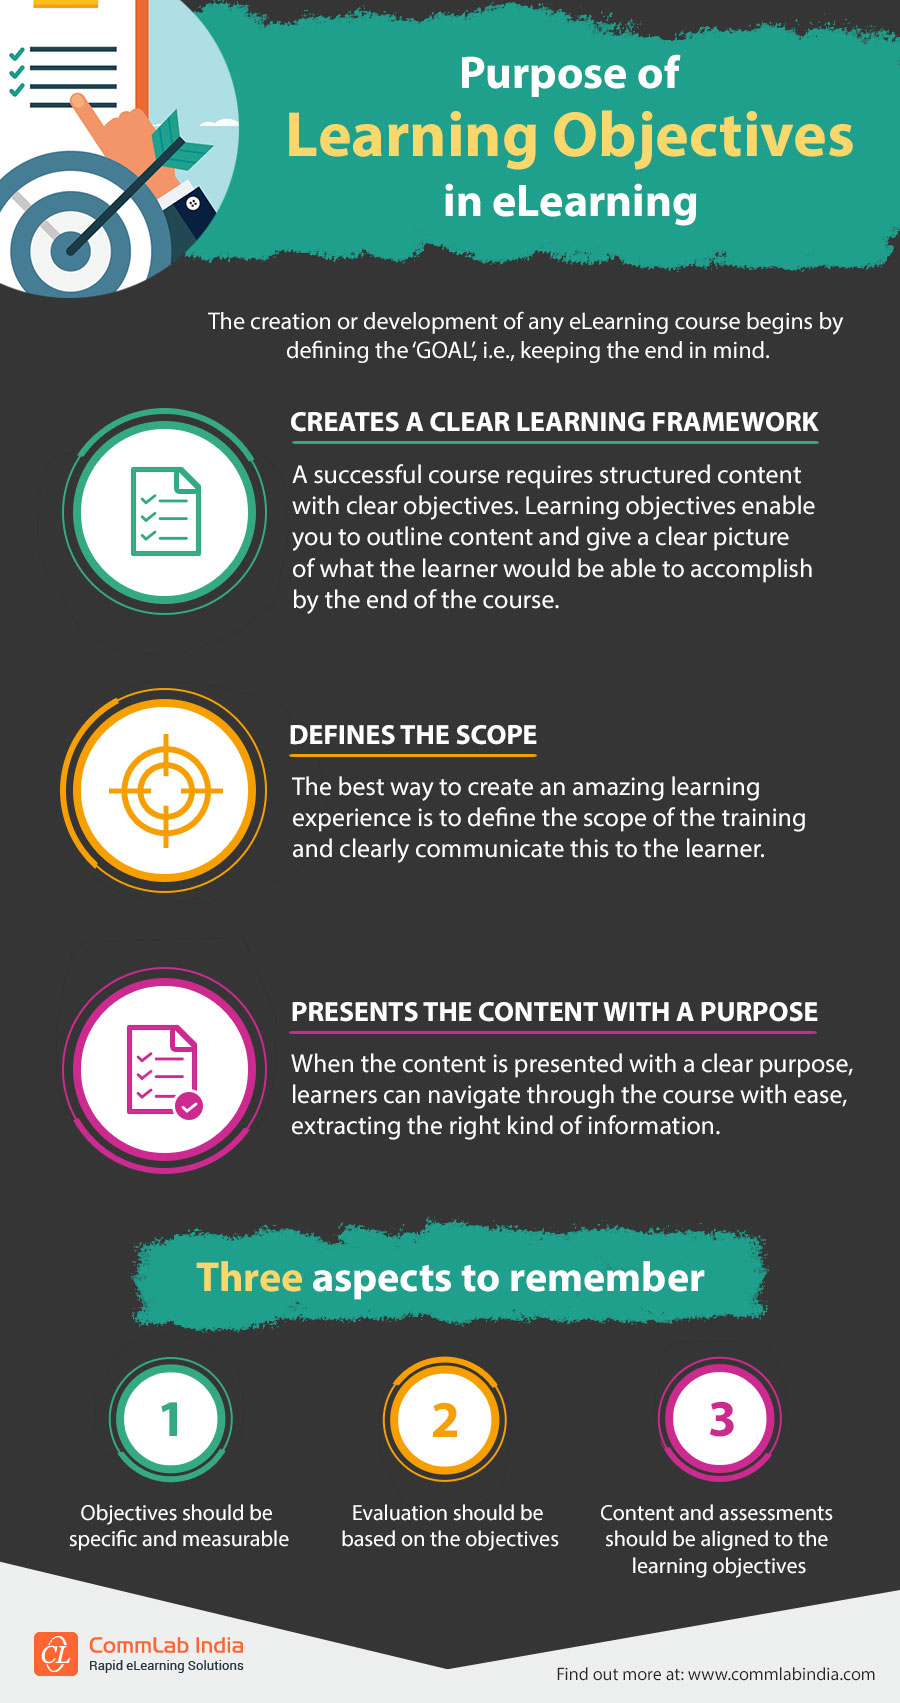 Purpose of Learning Objectives in eLearning [Infographic]